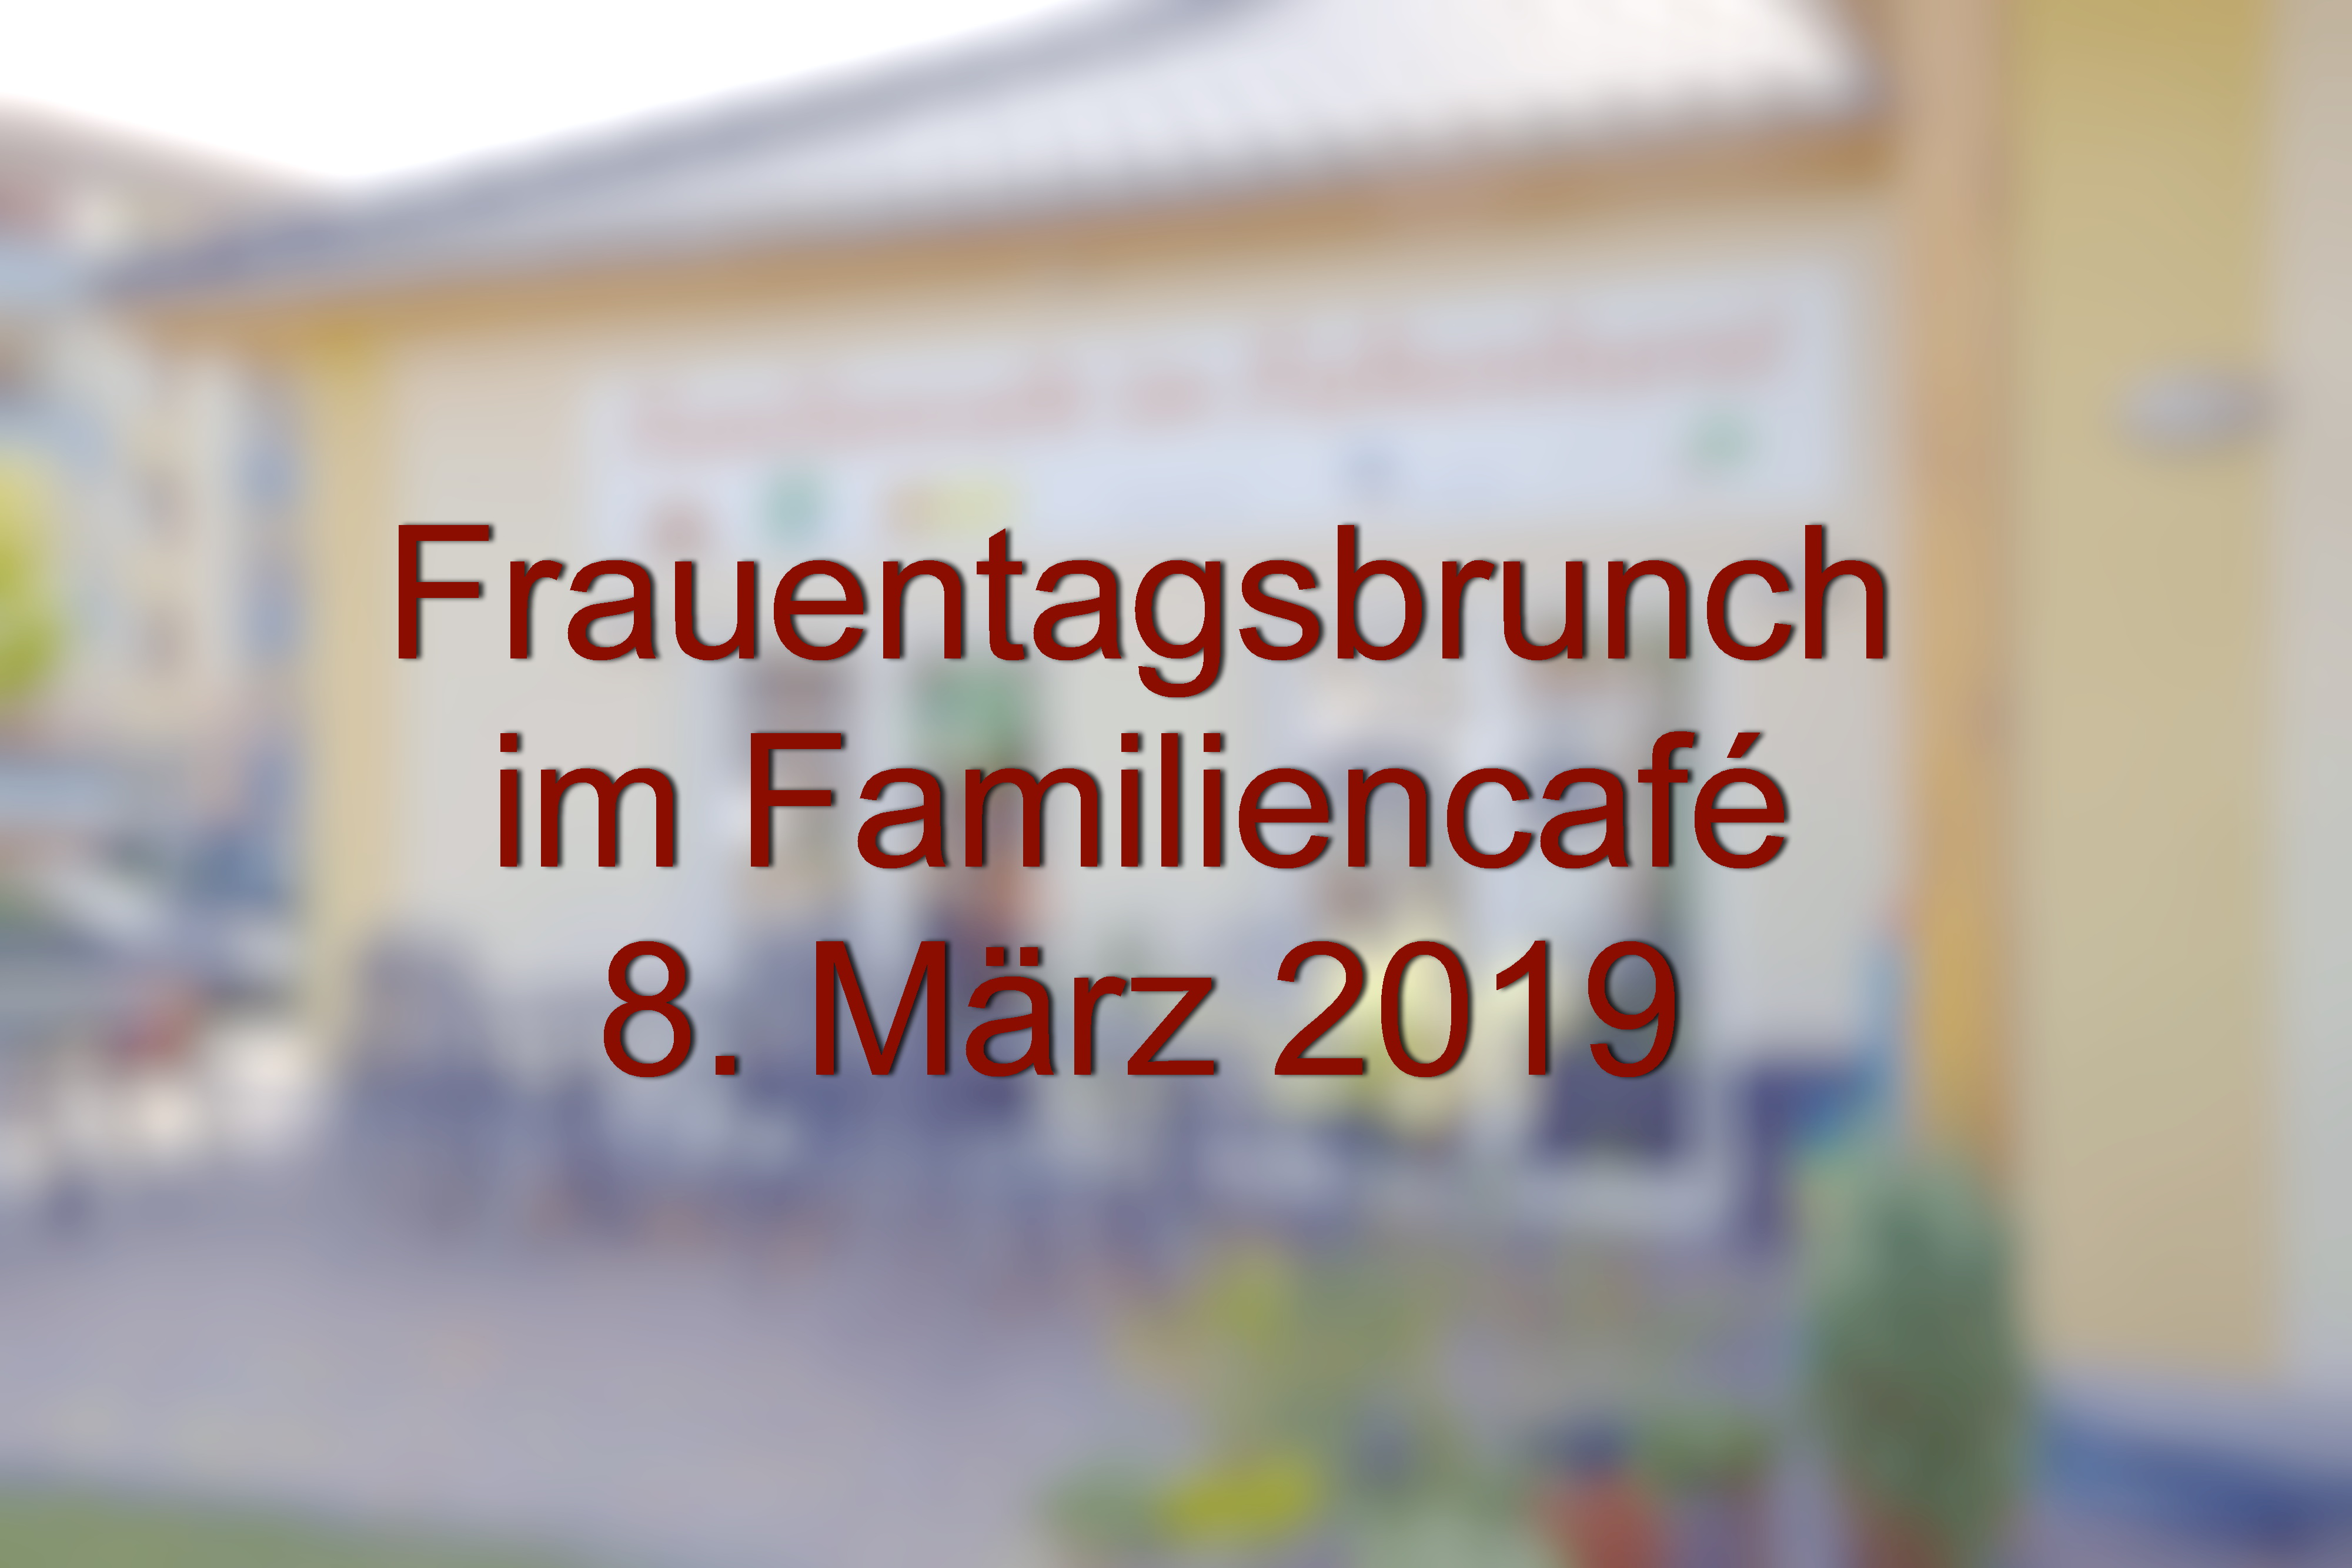 Frauentagsbrunch 2019.jpg